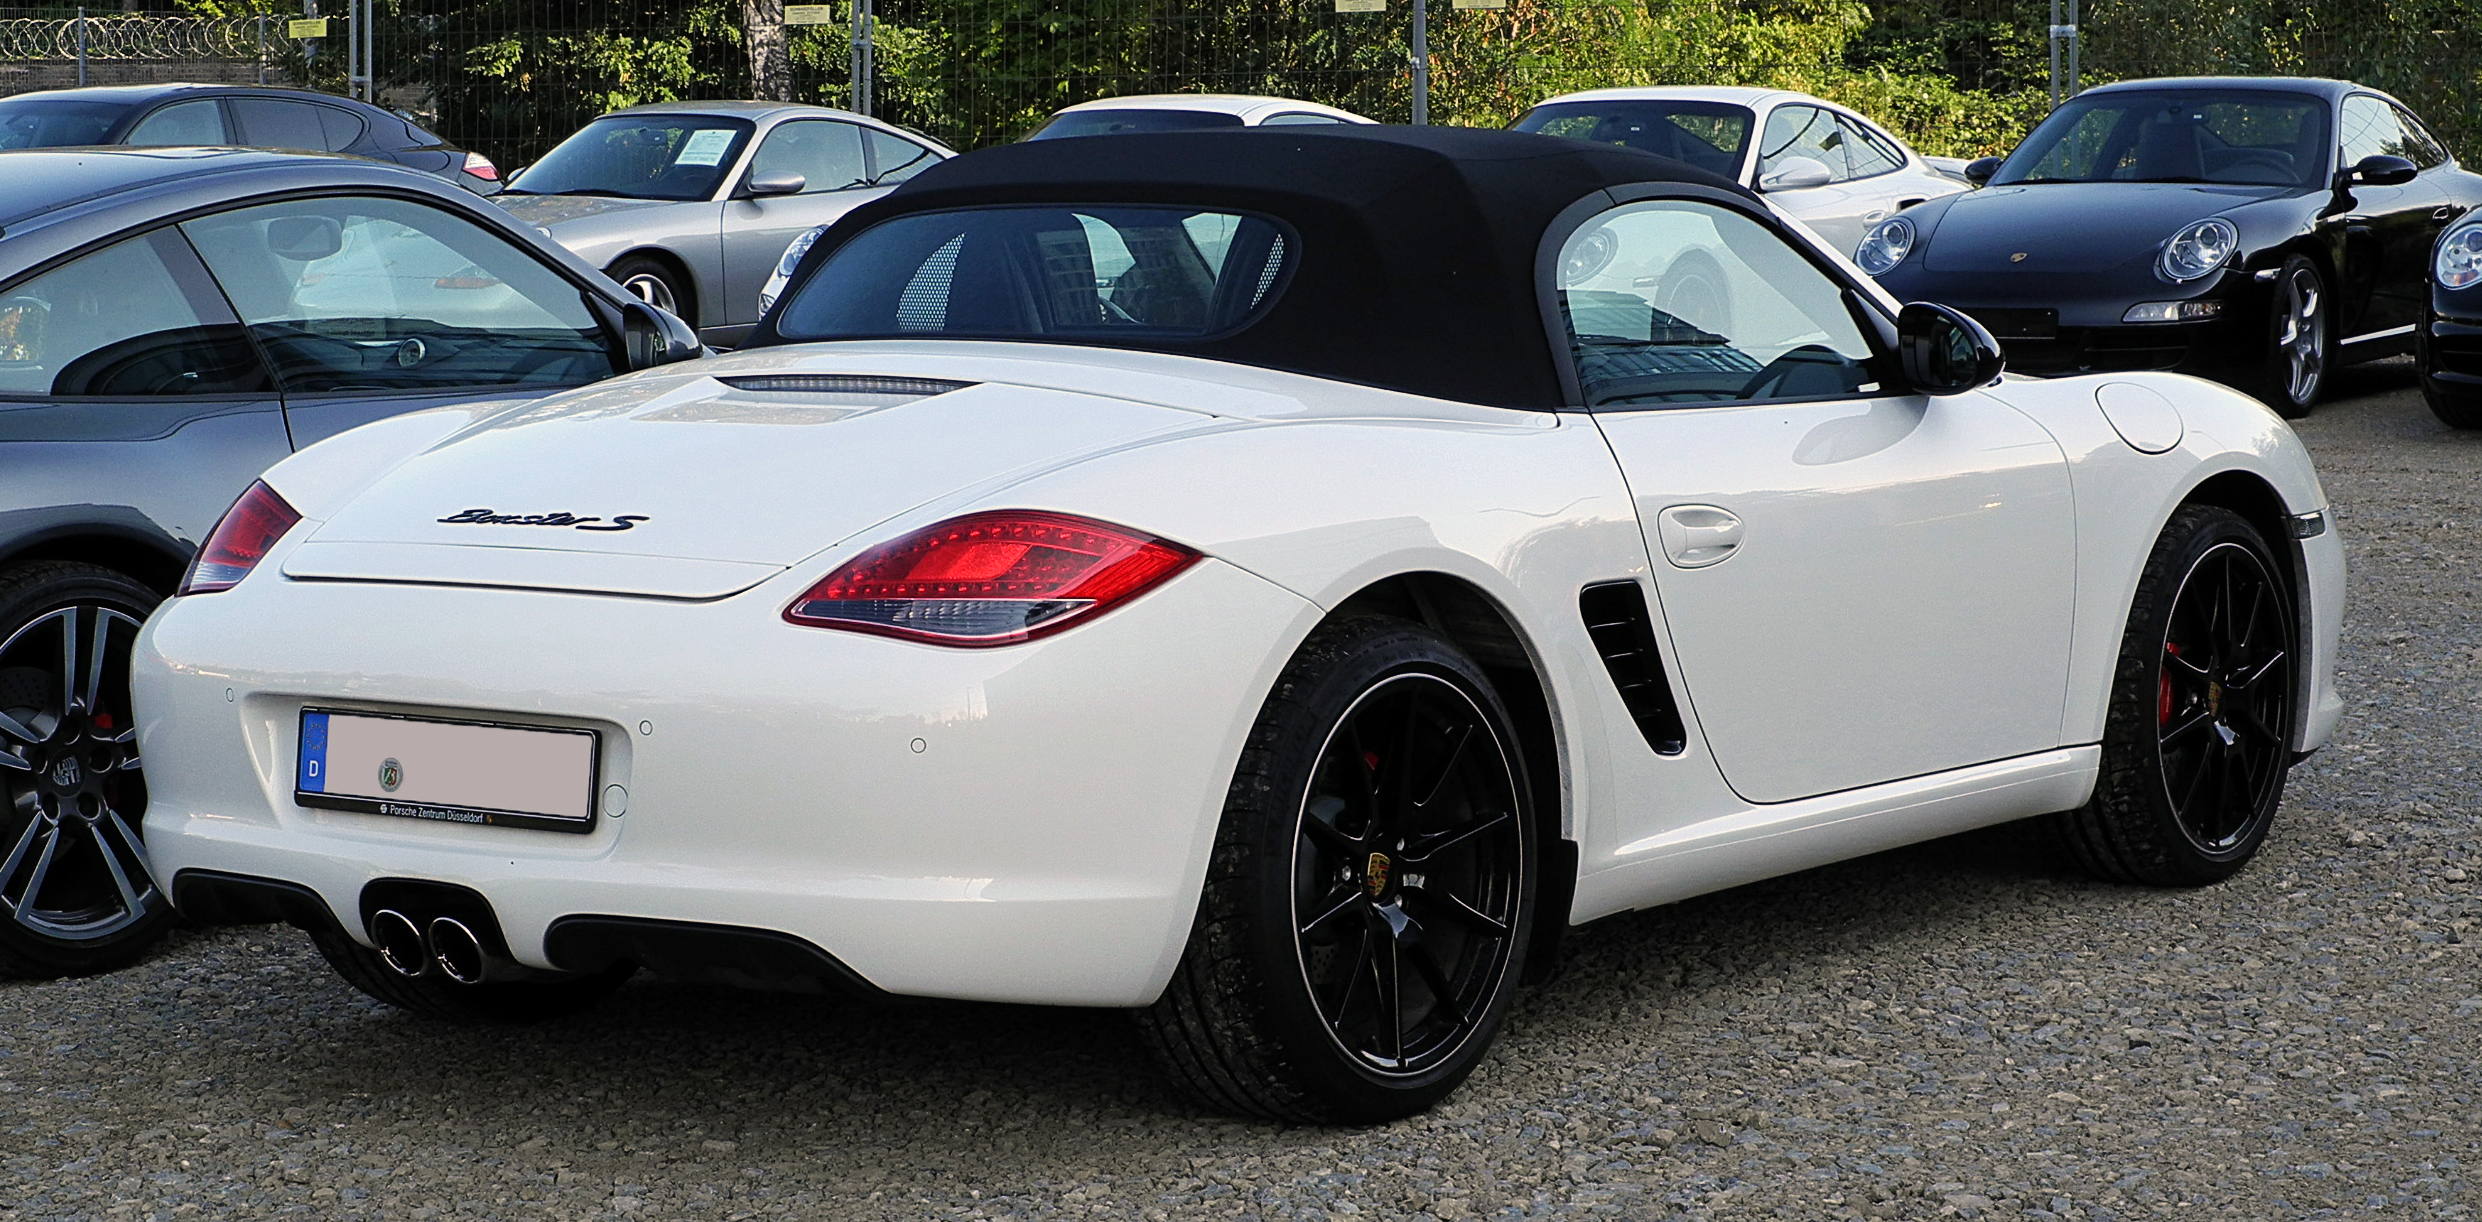 File:Porsche Boxster S (987, Facelift) – Heckansicht, 25. September